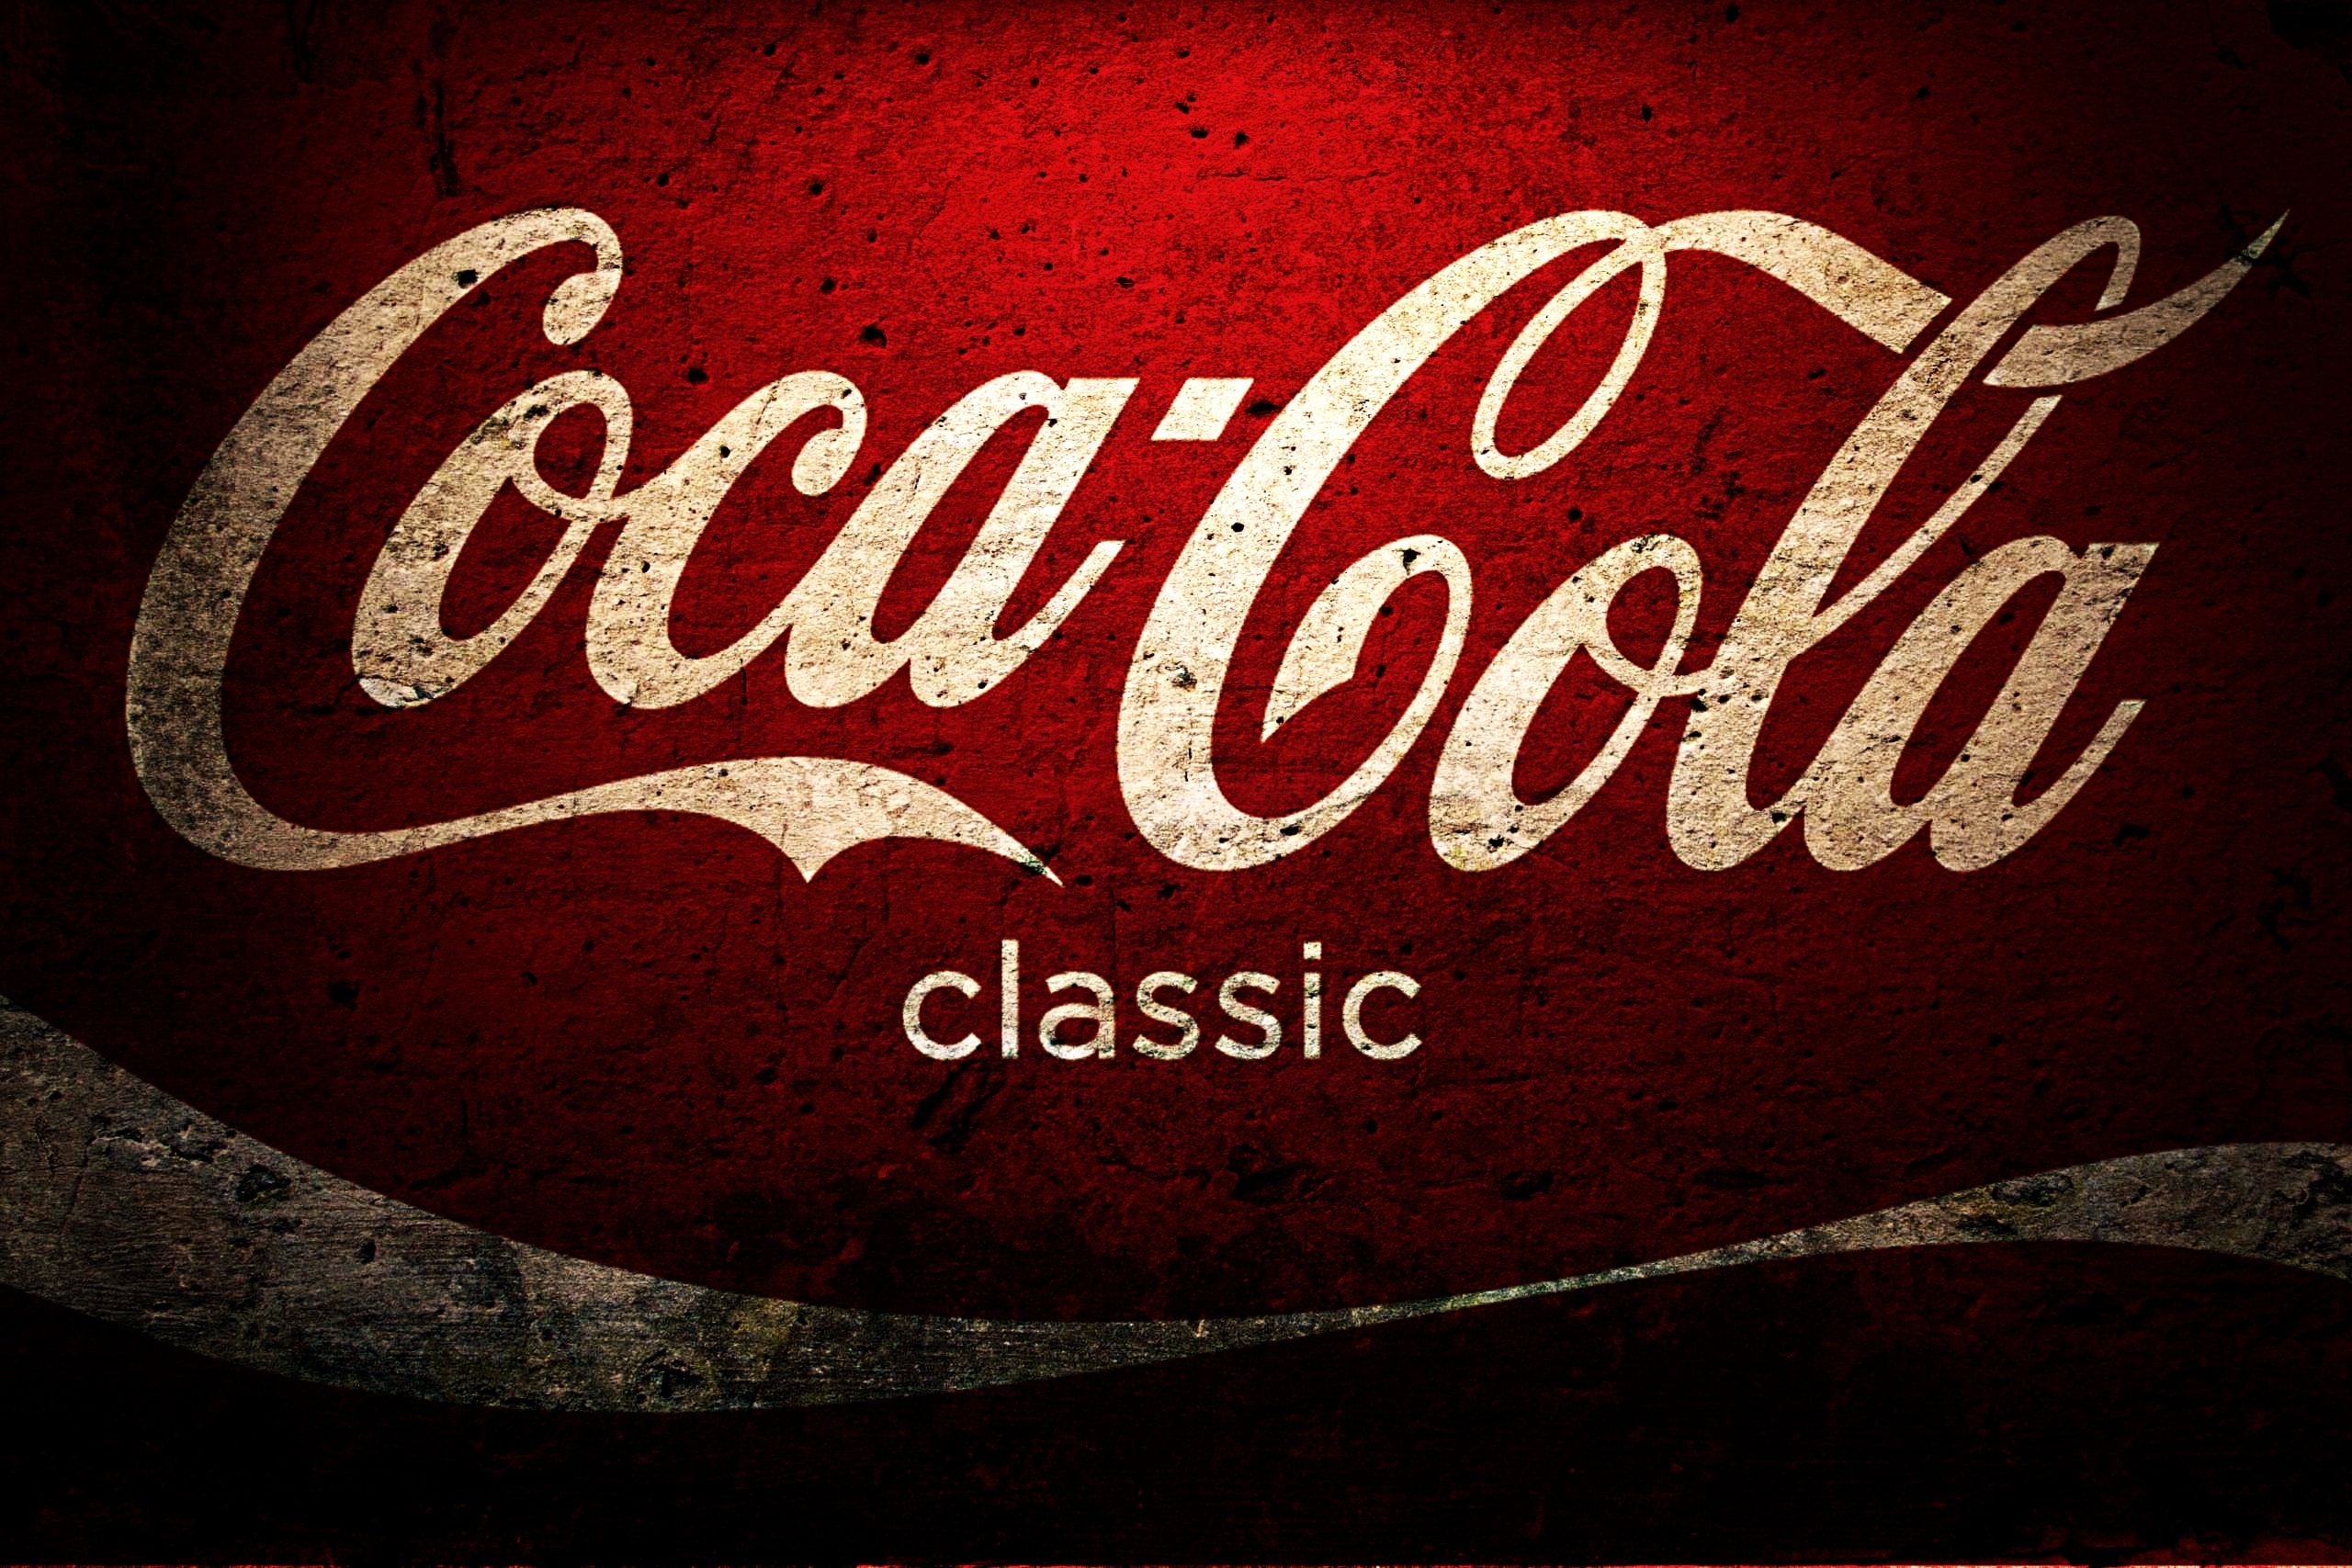 Coca-Cola Background